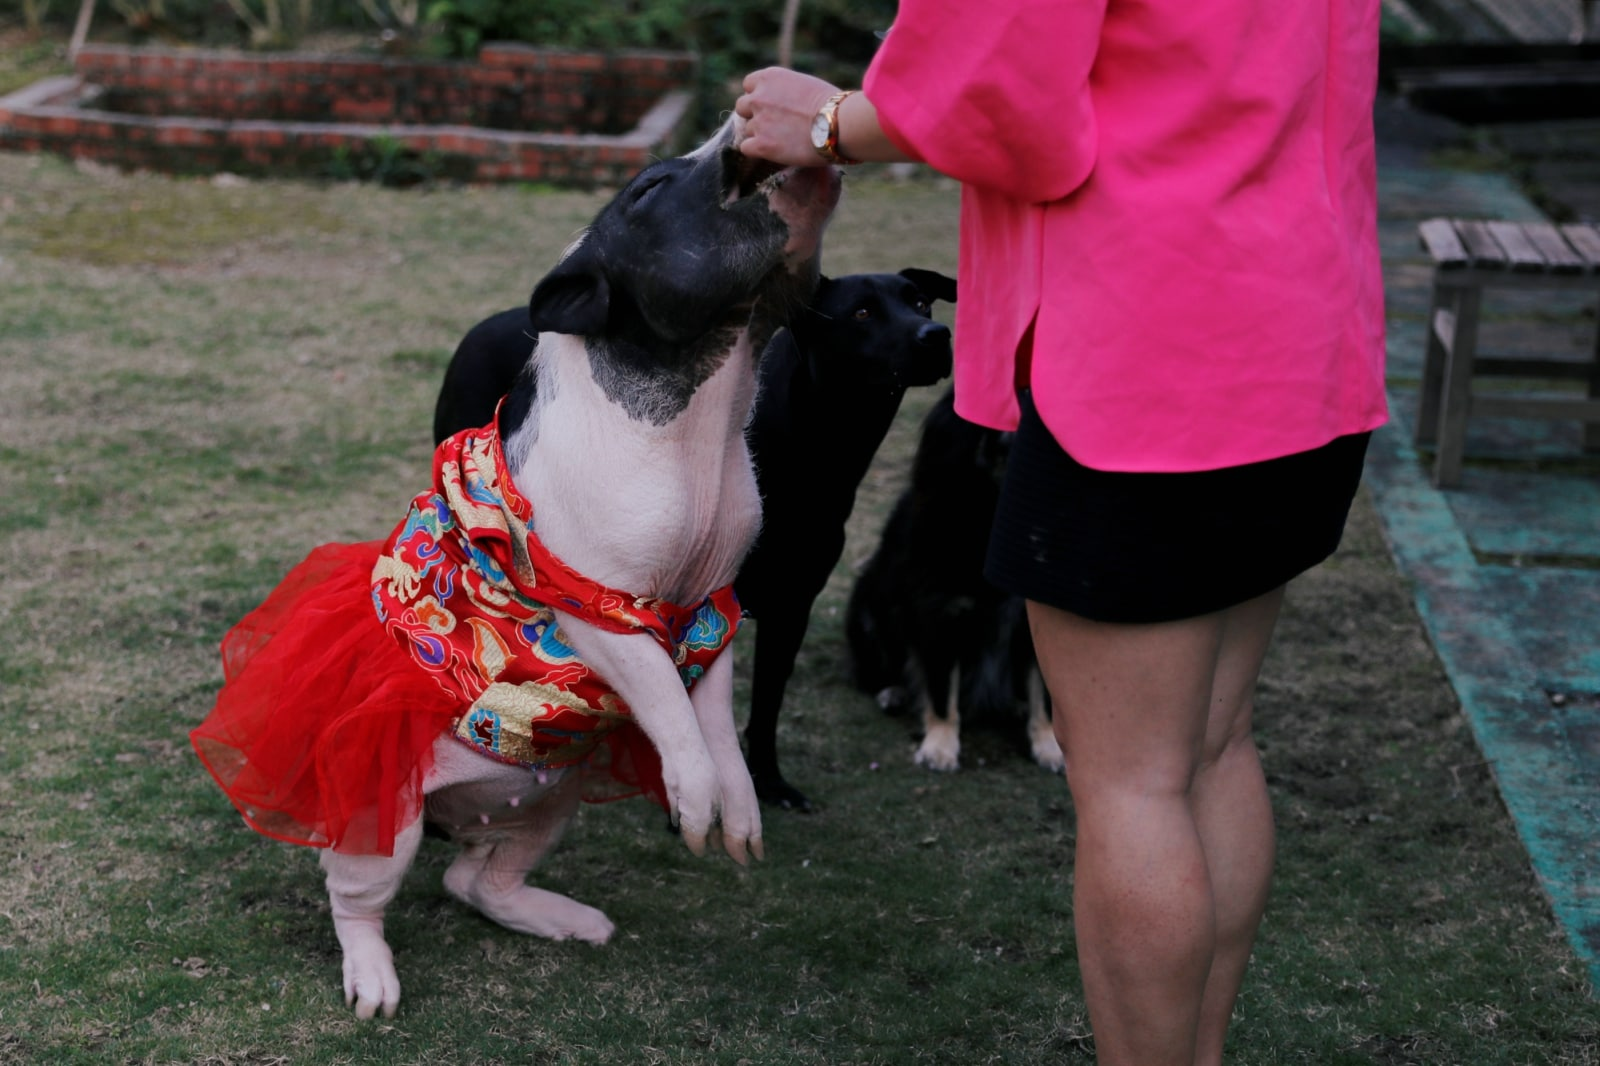 Sin Sin, a 4 years-old pet pig, which has been abandoned before, stands up on two legs for food at her owner Anita Chen's backyard, in Taipei, Taiwan January 28, 2019. REUTERS/Tyrone Siu